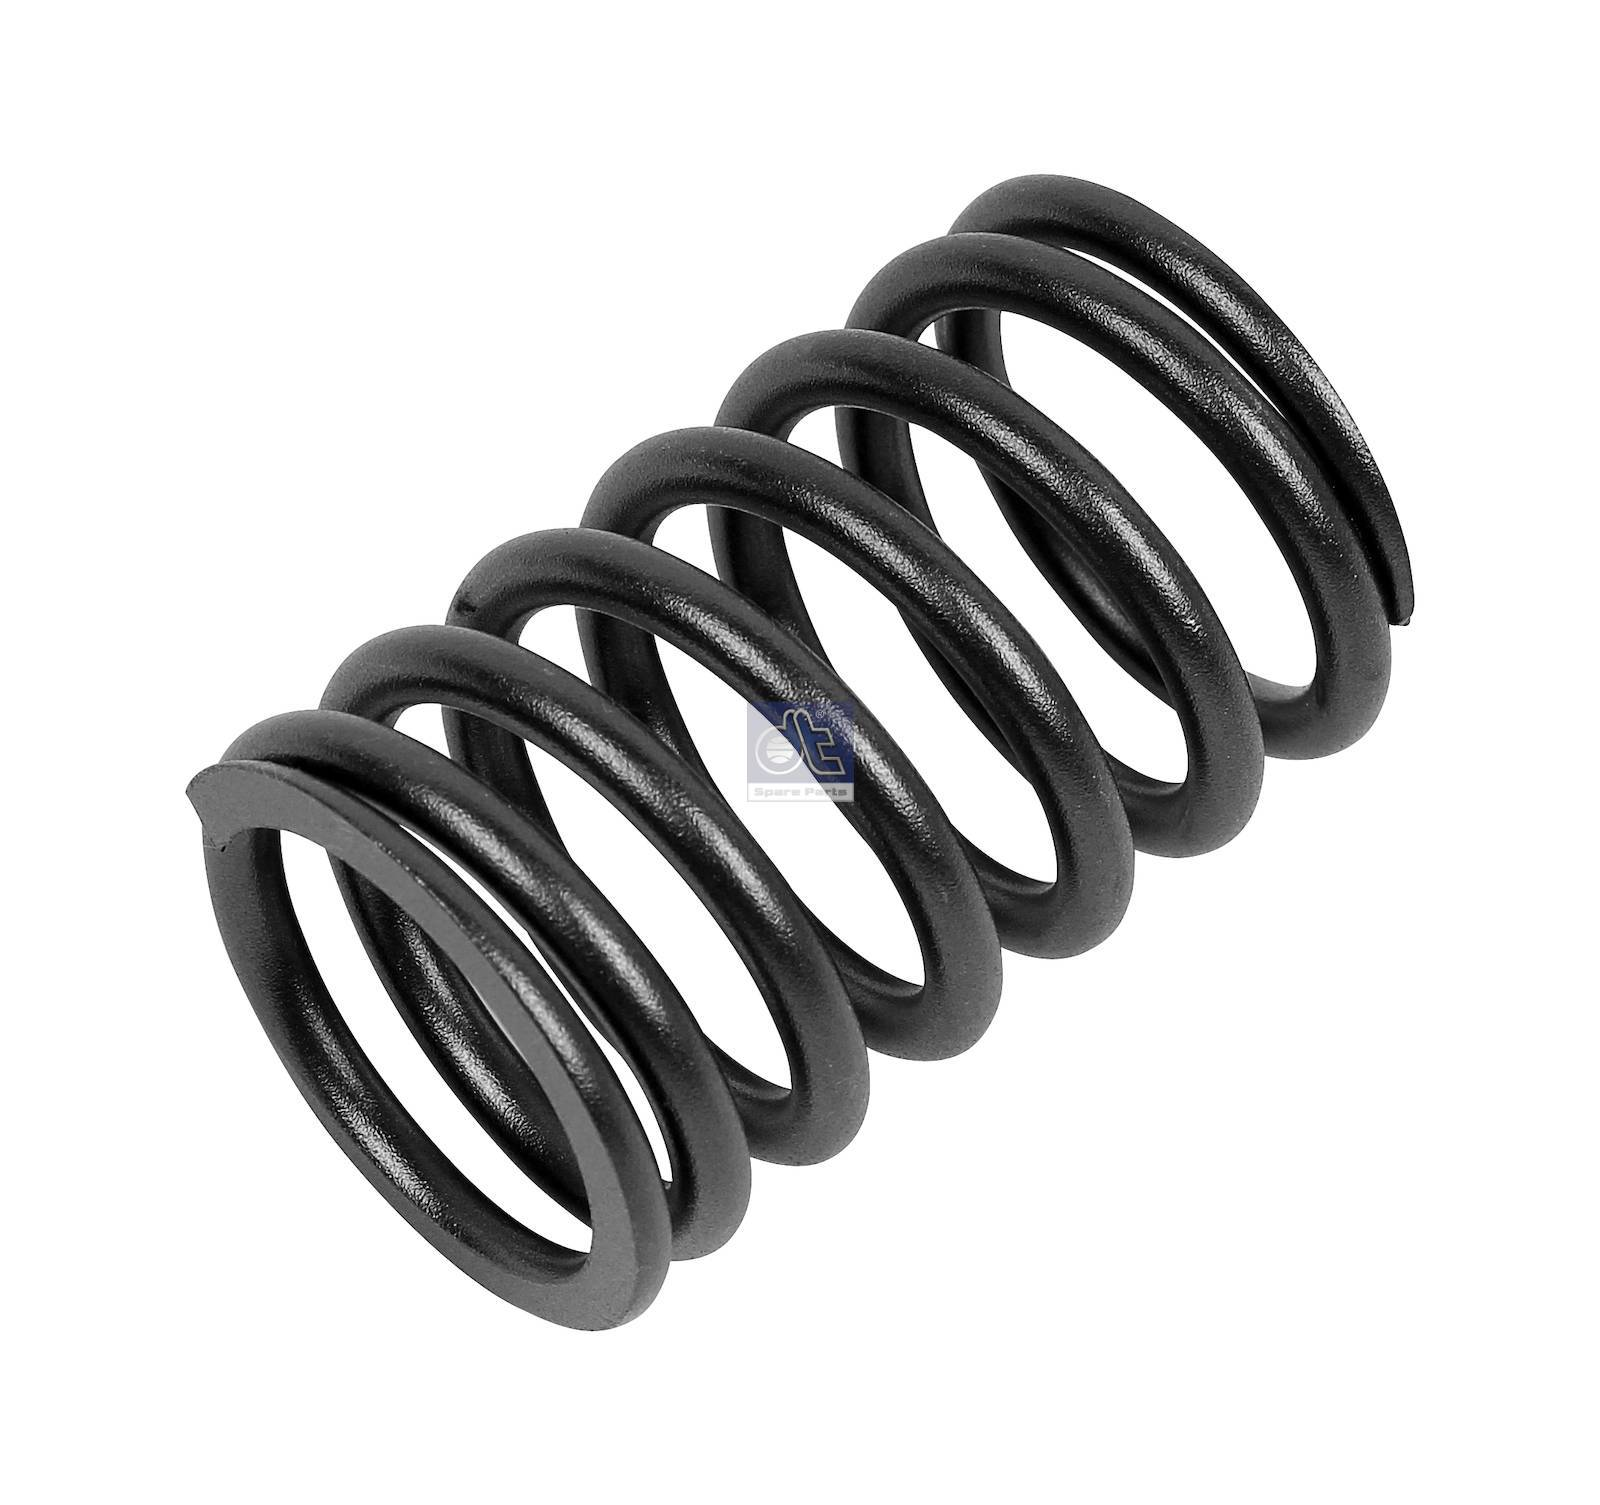 Valve spring, intake and exhaust, outer